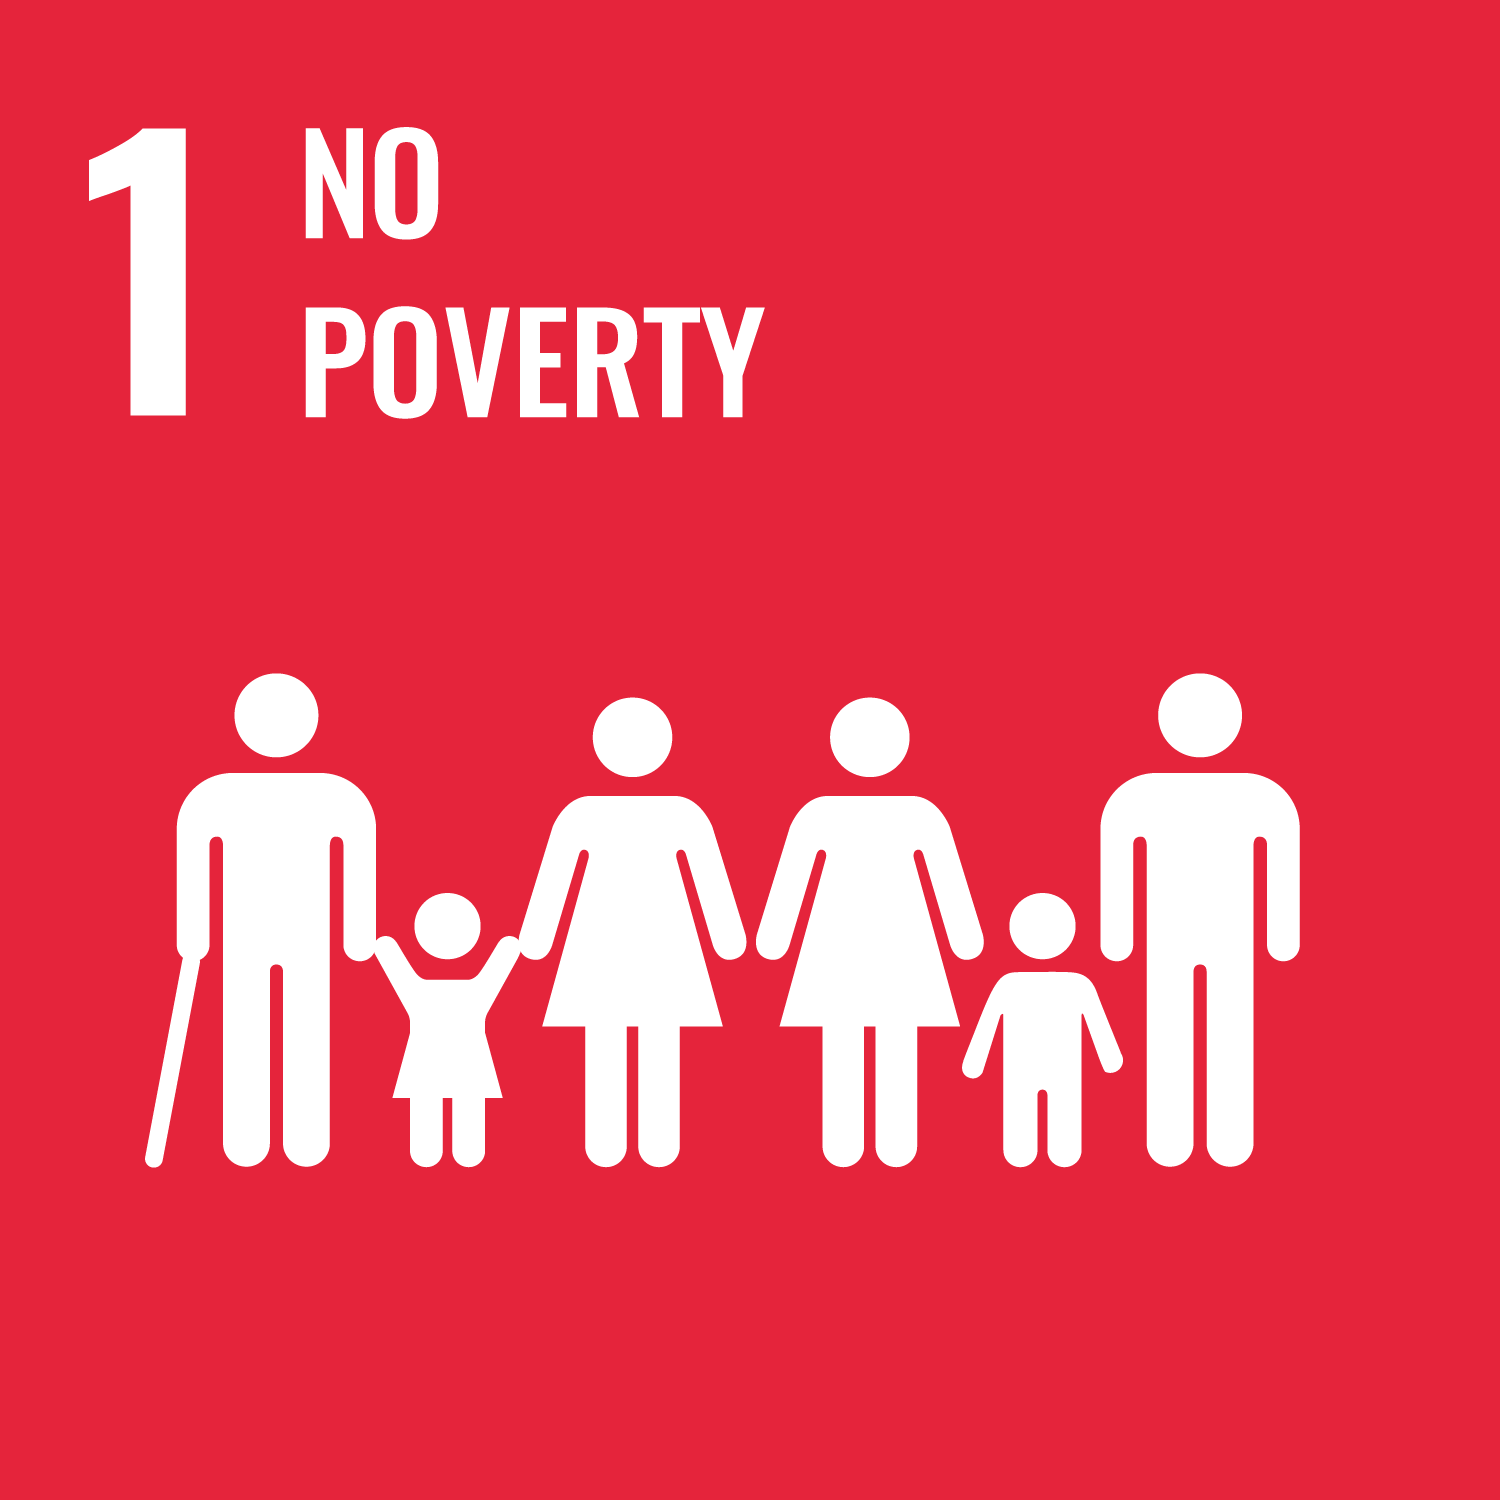 UN Goal no poverty